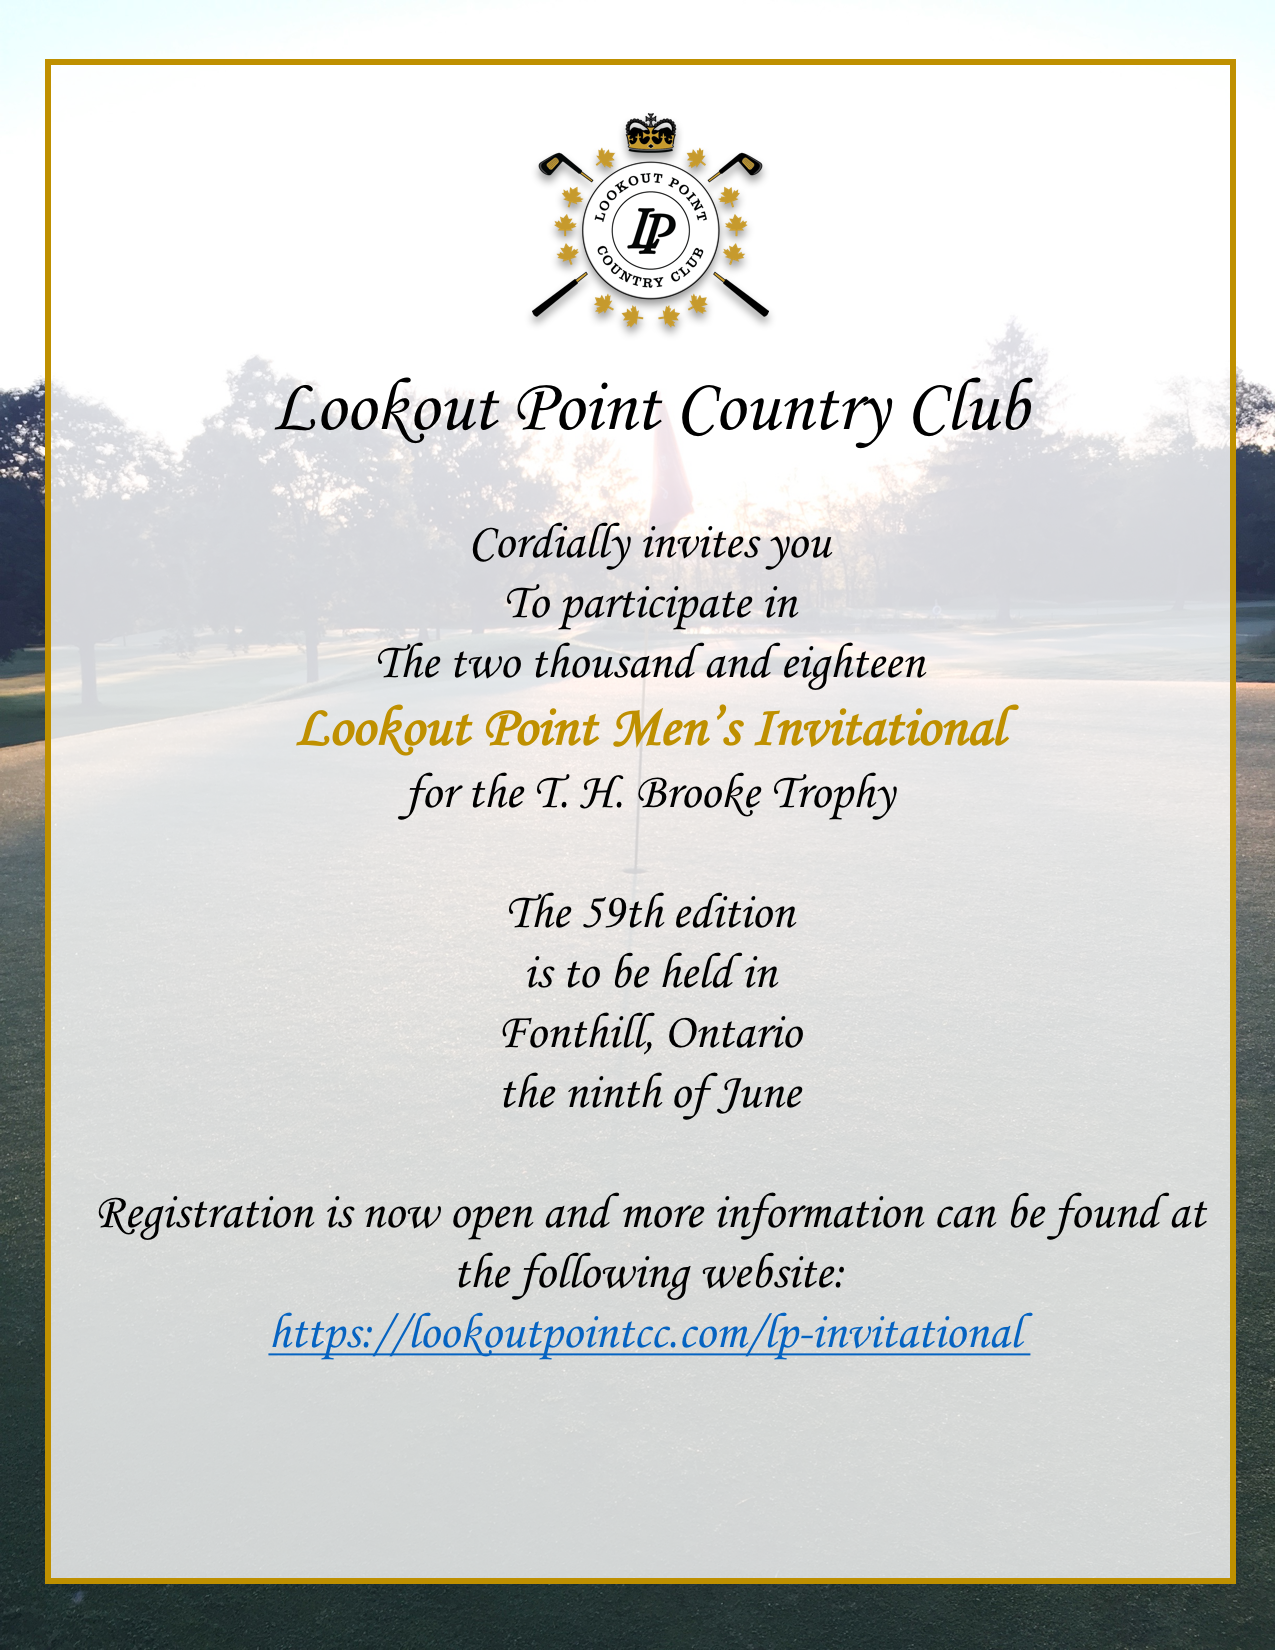 Got Game? - Do you want to test your game amongst some of the best golfers in the Niagara and GTA regions? Now is the time to register for the 59th annual edition of the Lookout Point Men's Invitational (previously known as